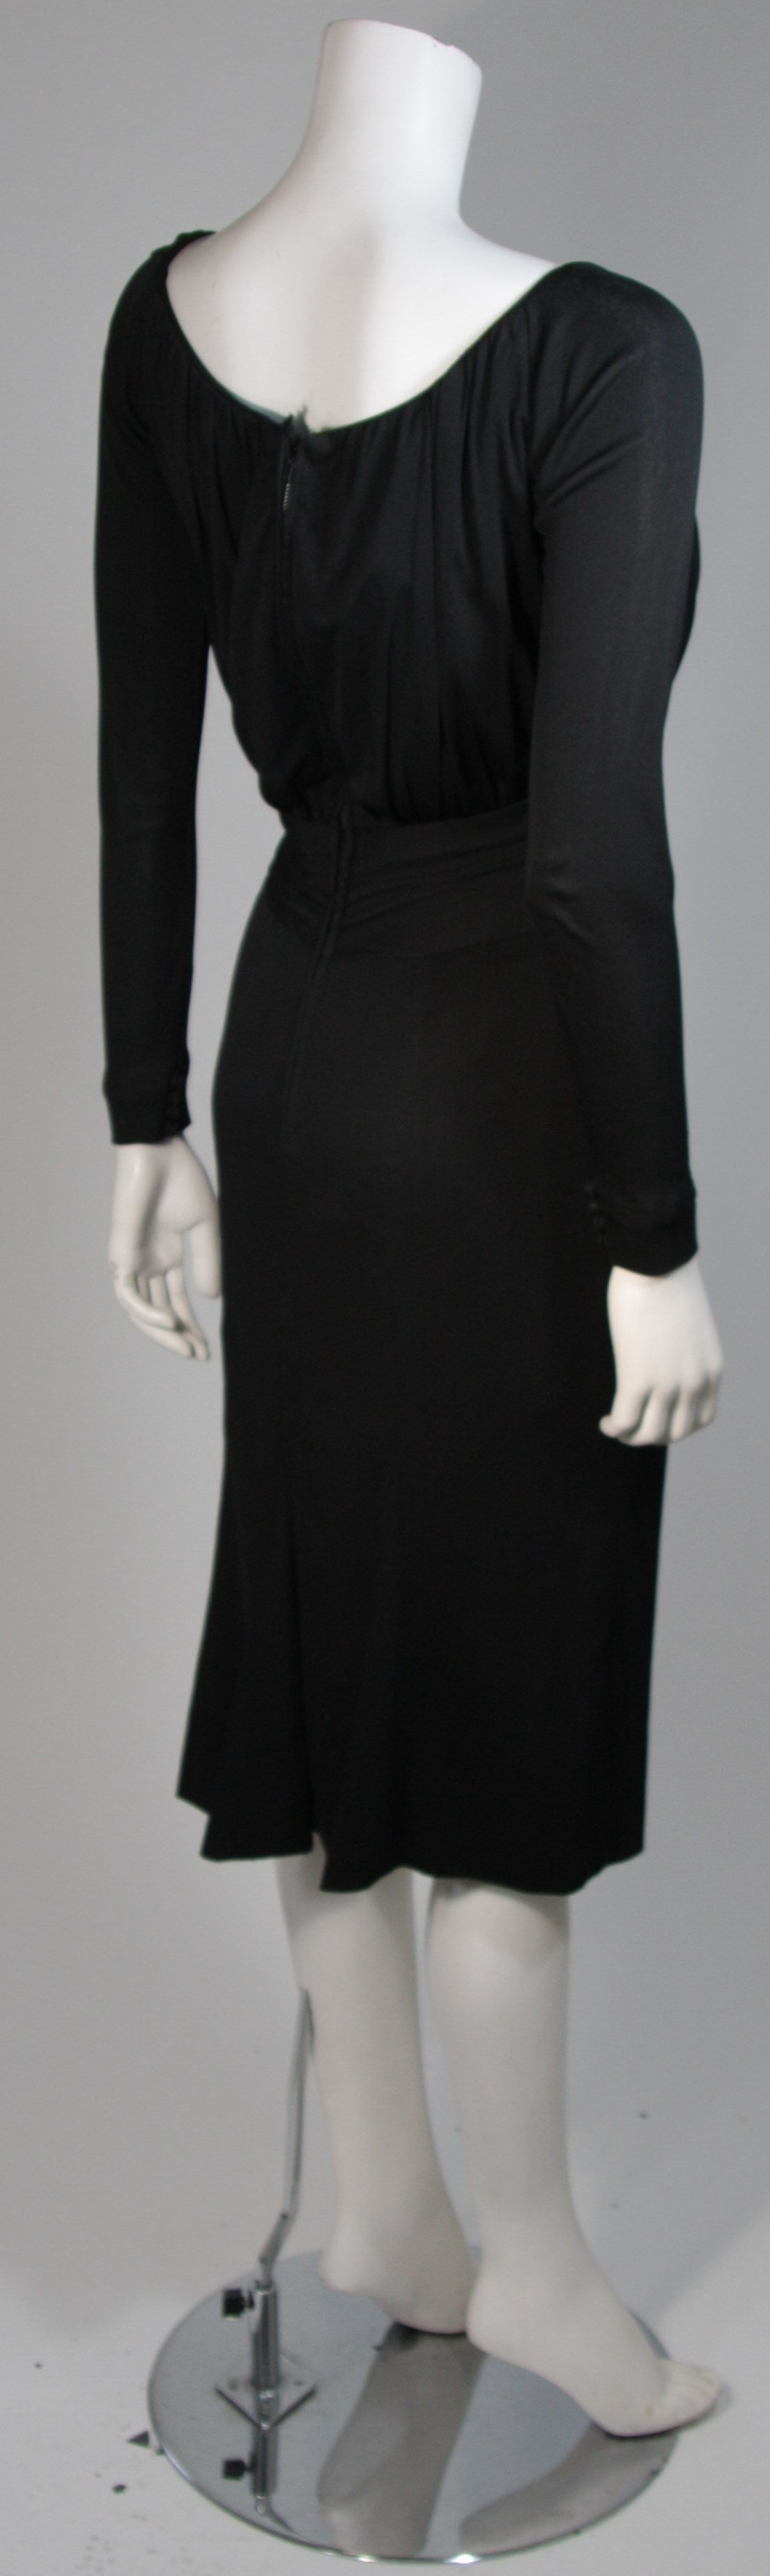 Ceil Chapman Black Silk Crepe Cocktail Dress with Gathers Size 4-6 7